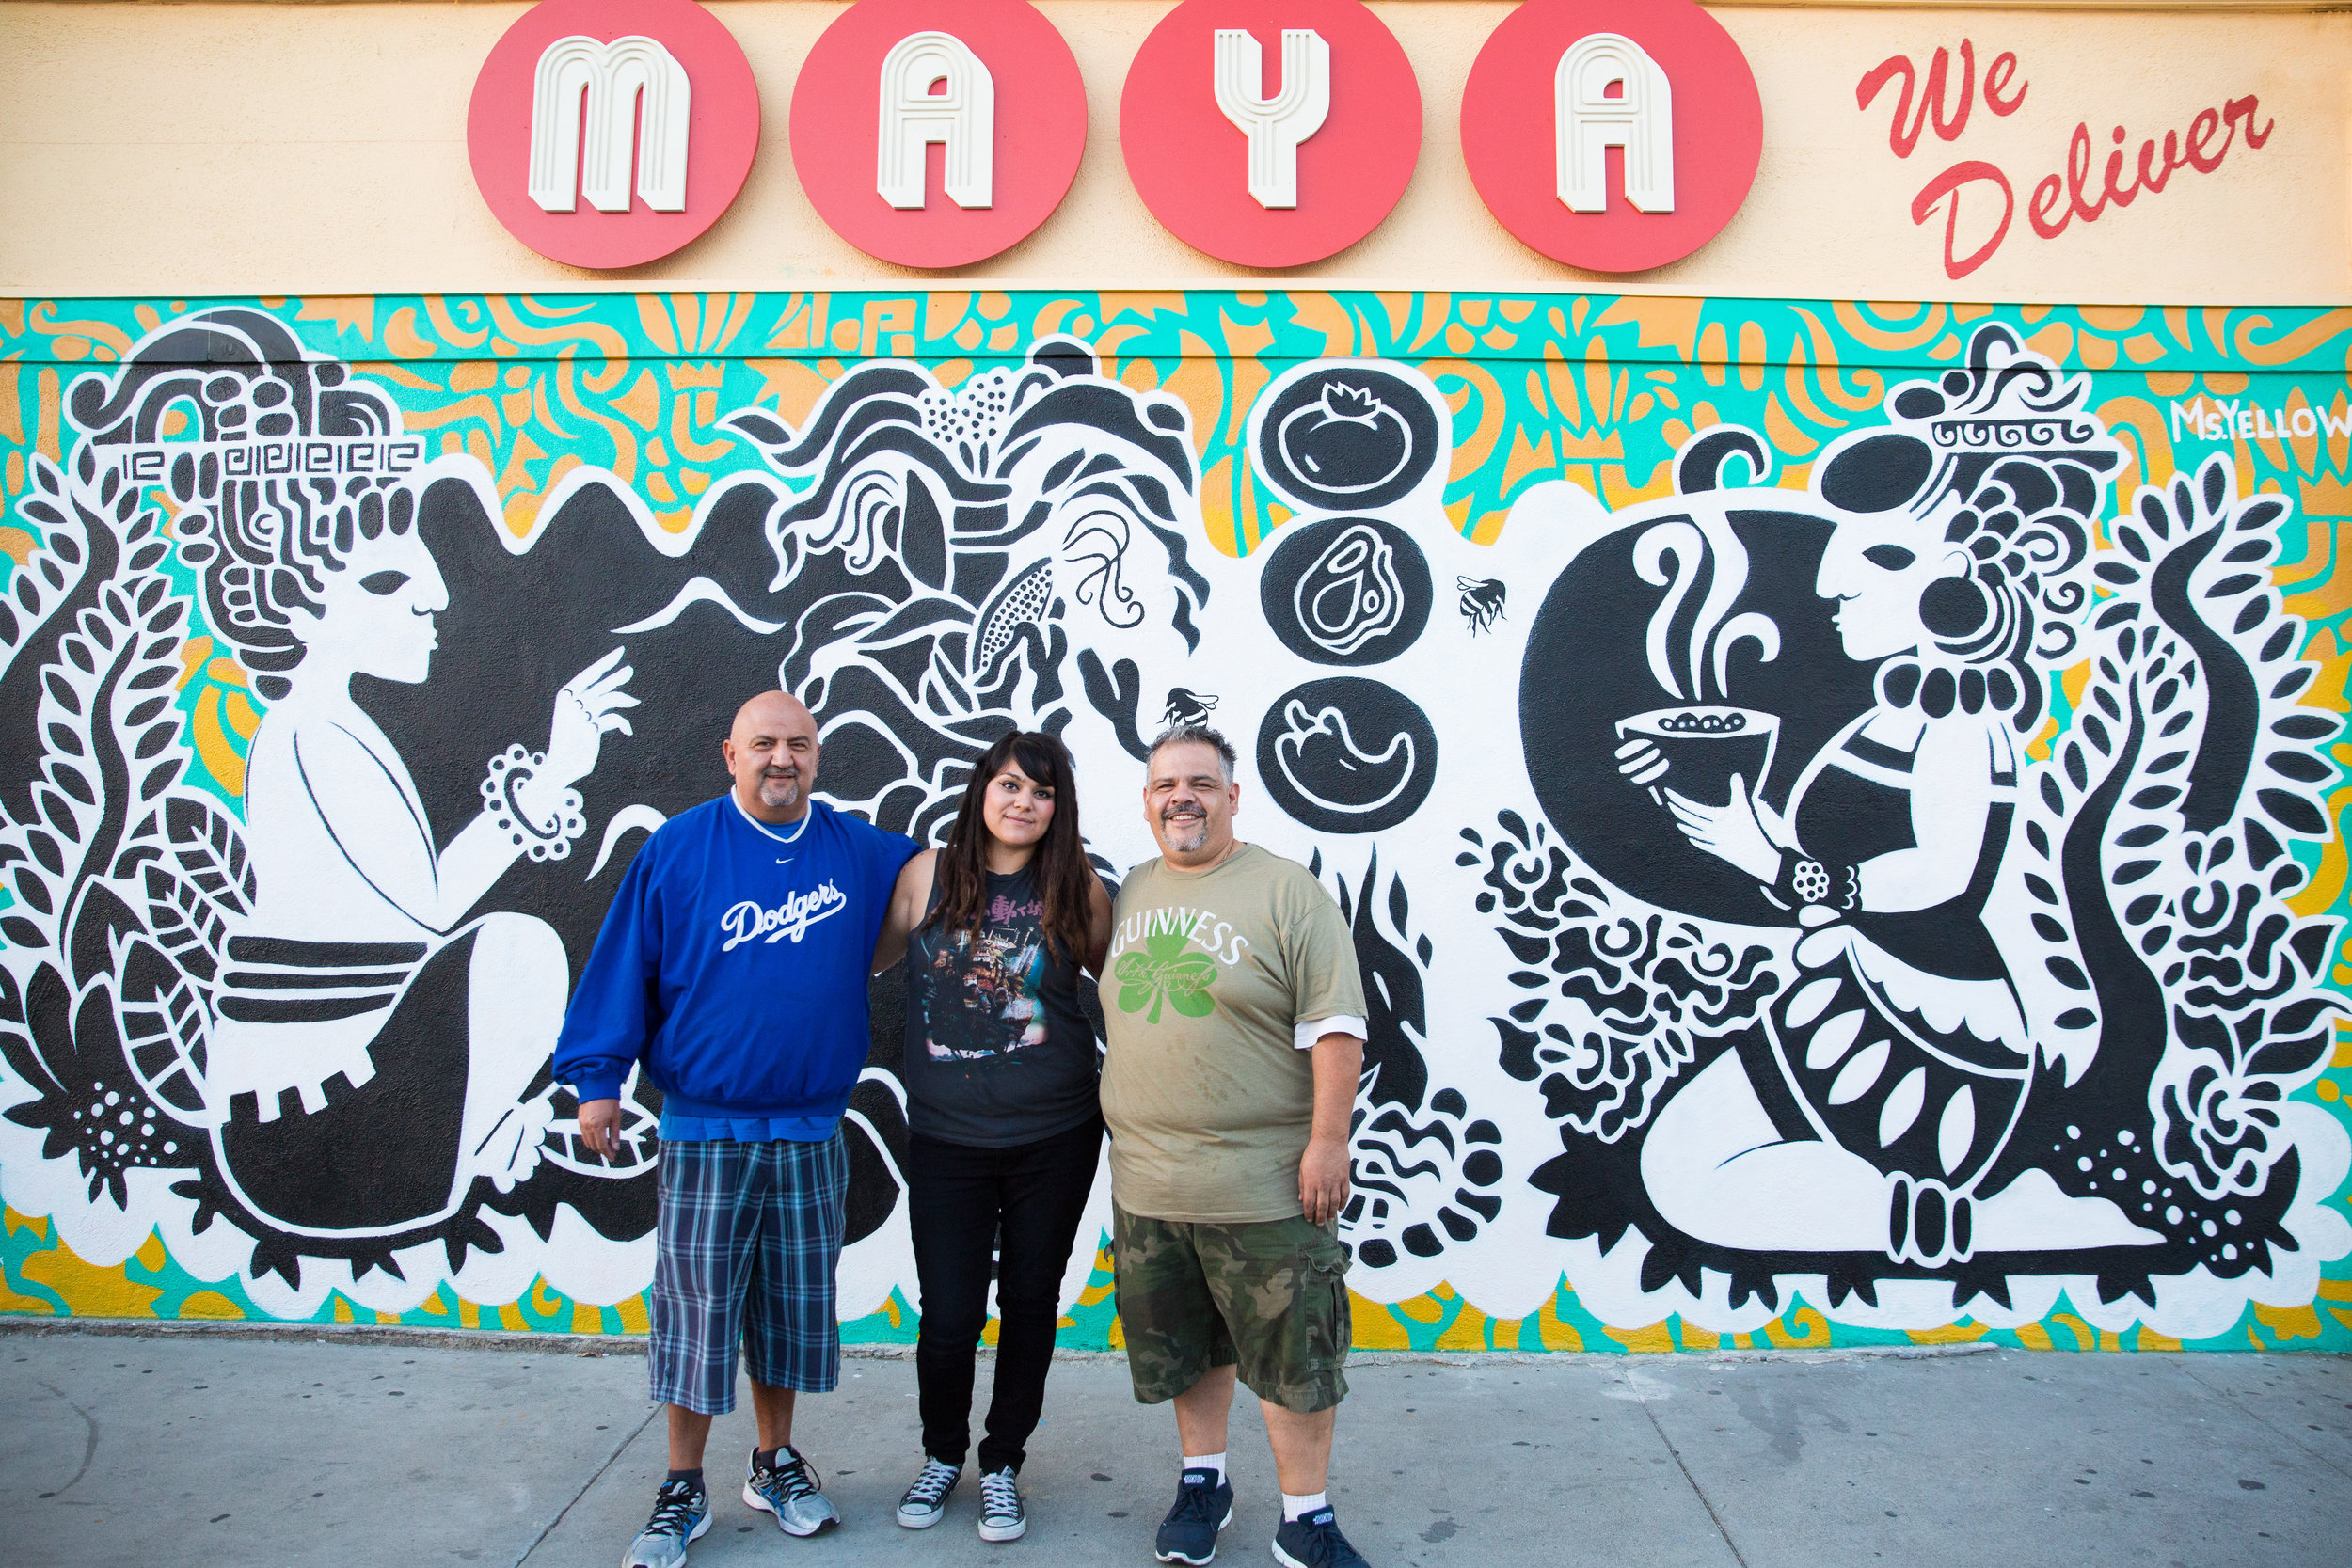 Maya Mexican Restaurant owners Rudy and Ricardo Sanchez, along with mural artist Nuria Ortiz (Ms. Yellow), in front of their new signage and mural in Wilmington, Los Angeles. (This project was part of the On Avalon: Small Business Support Program.)